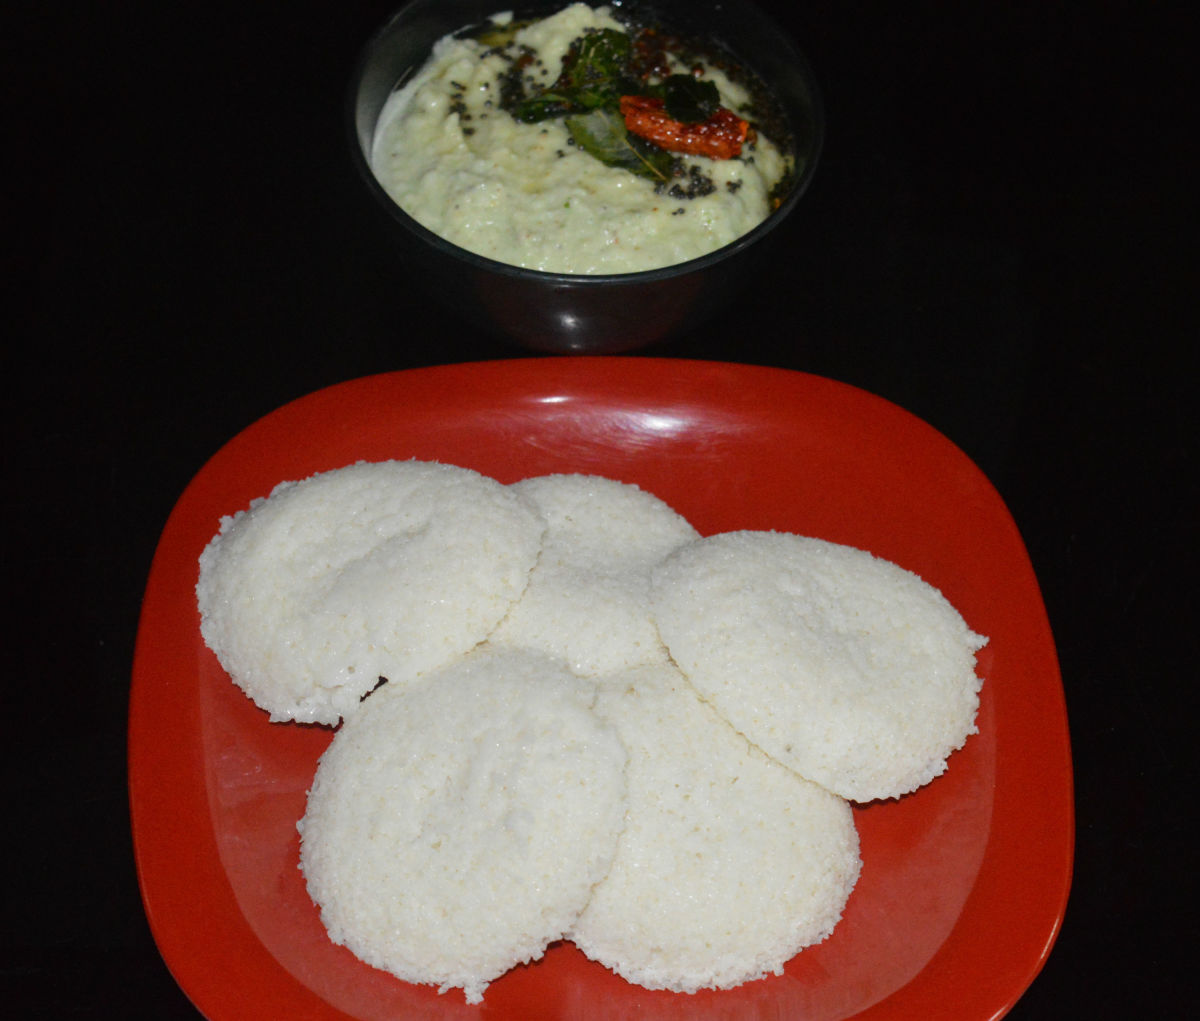 How to Make Rice and Urad Dal (Black Lentil) Idli